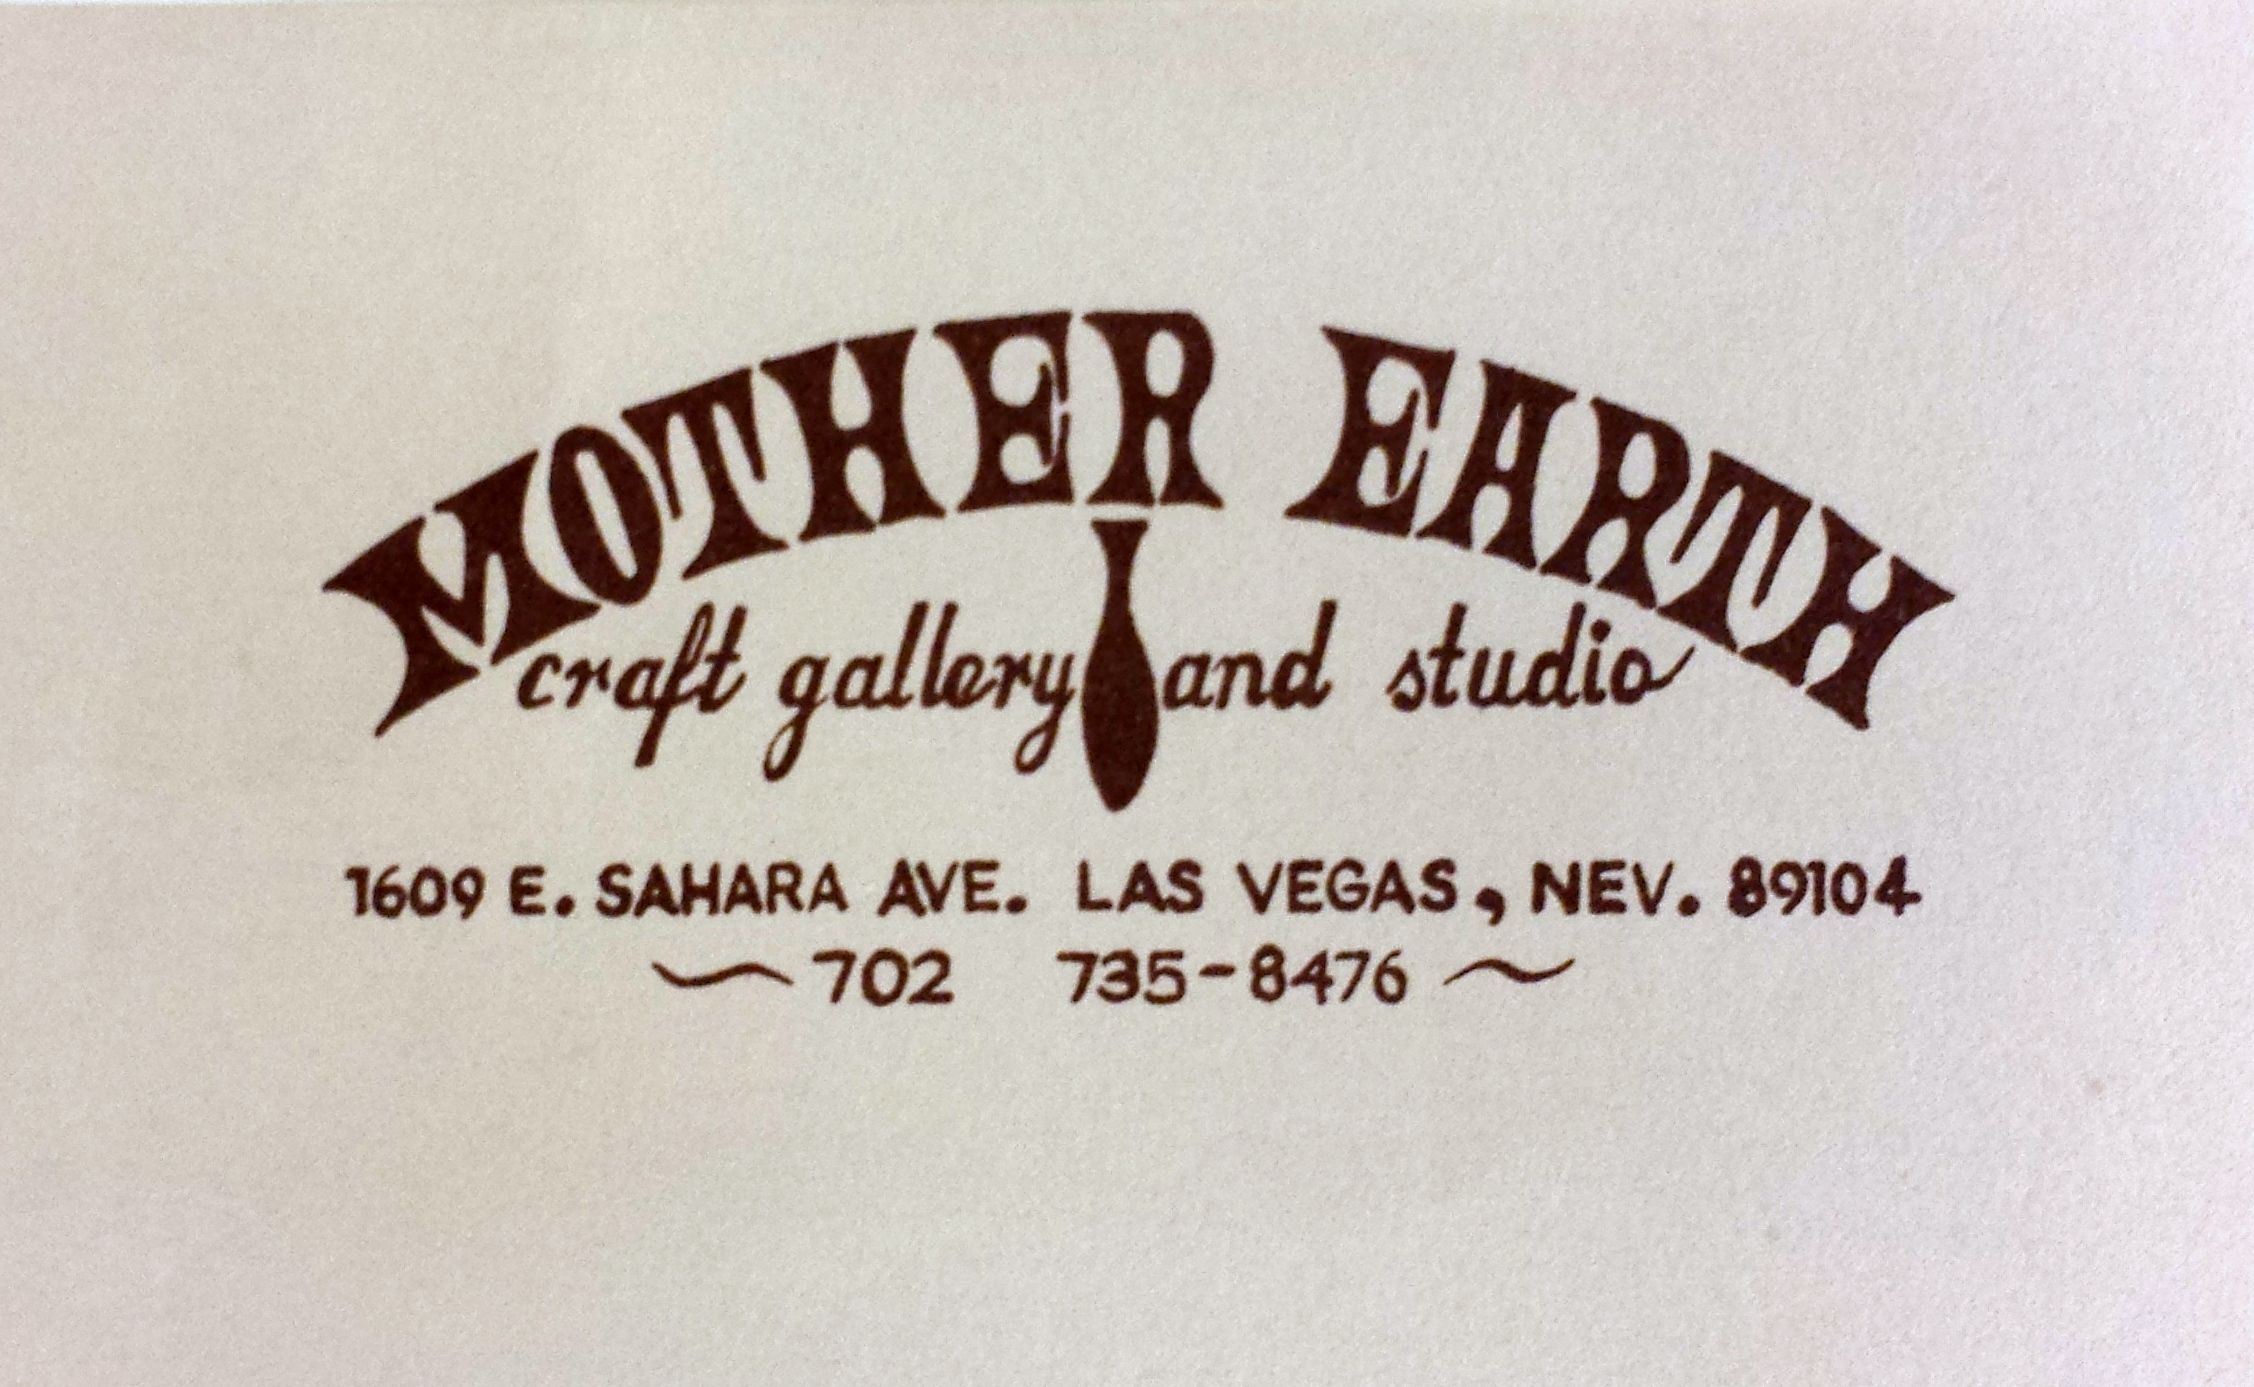 Mother Earth Craft Gallery and Studio letterhead.